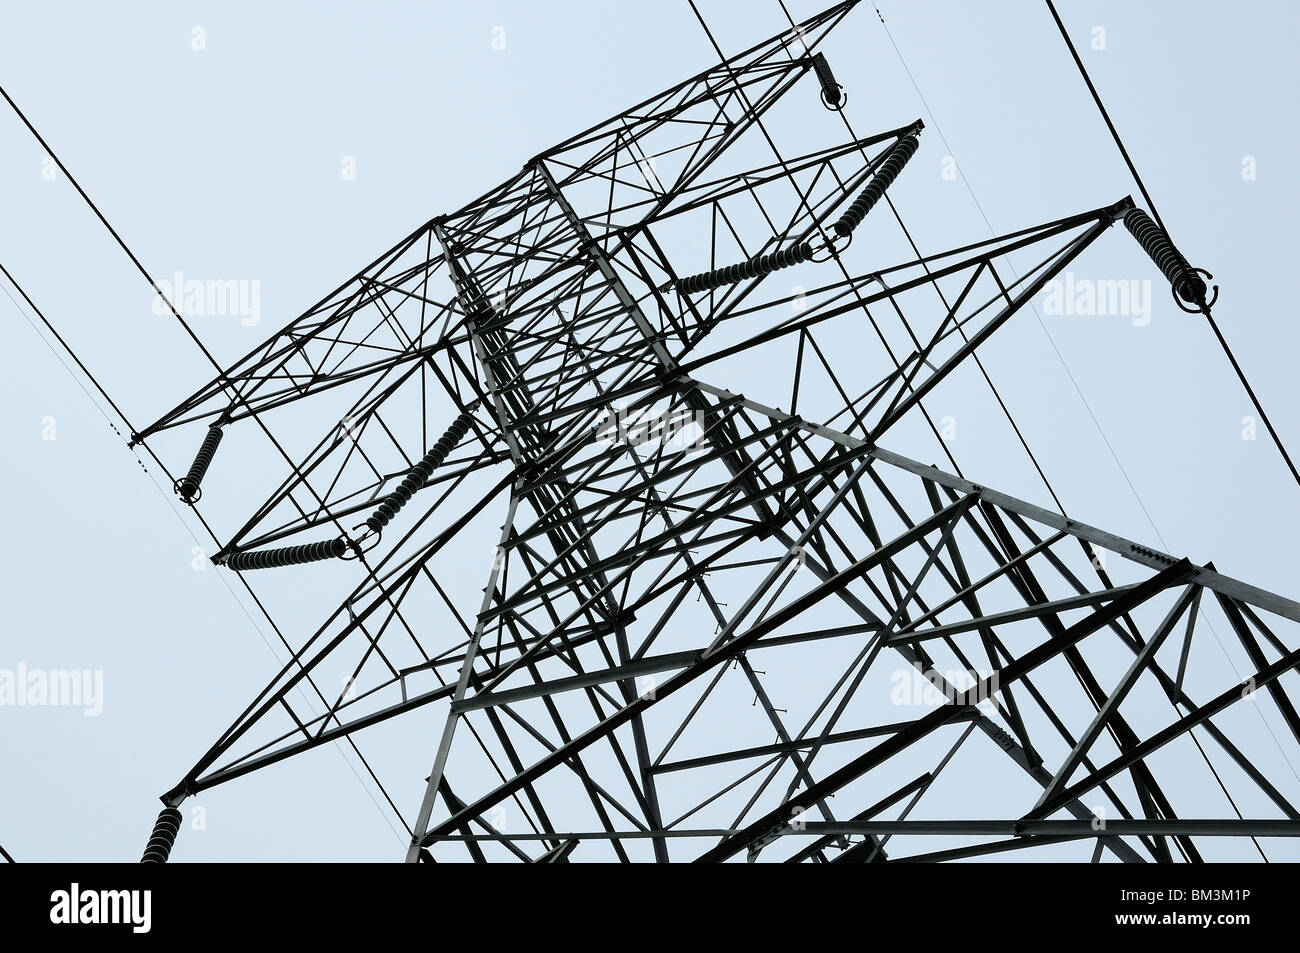 High Voltage Power Tower - Stock Image